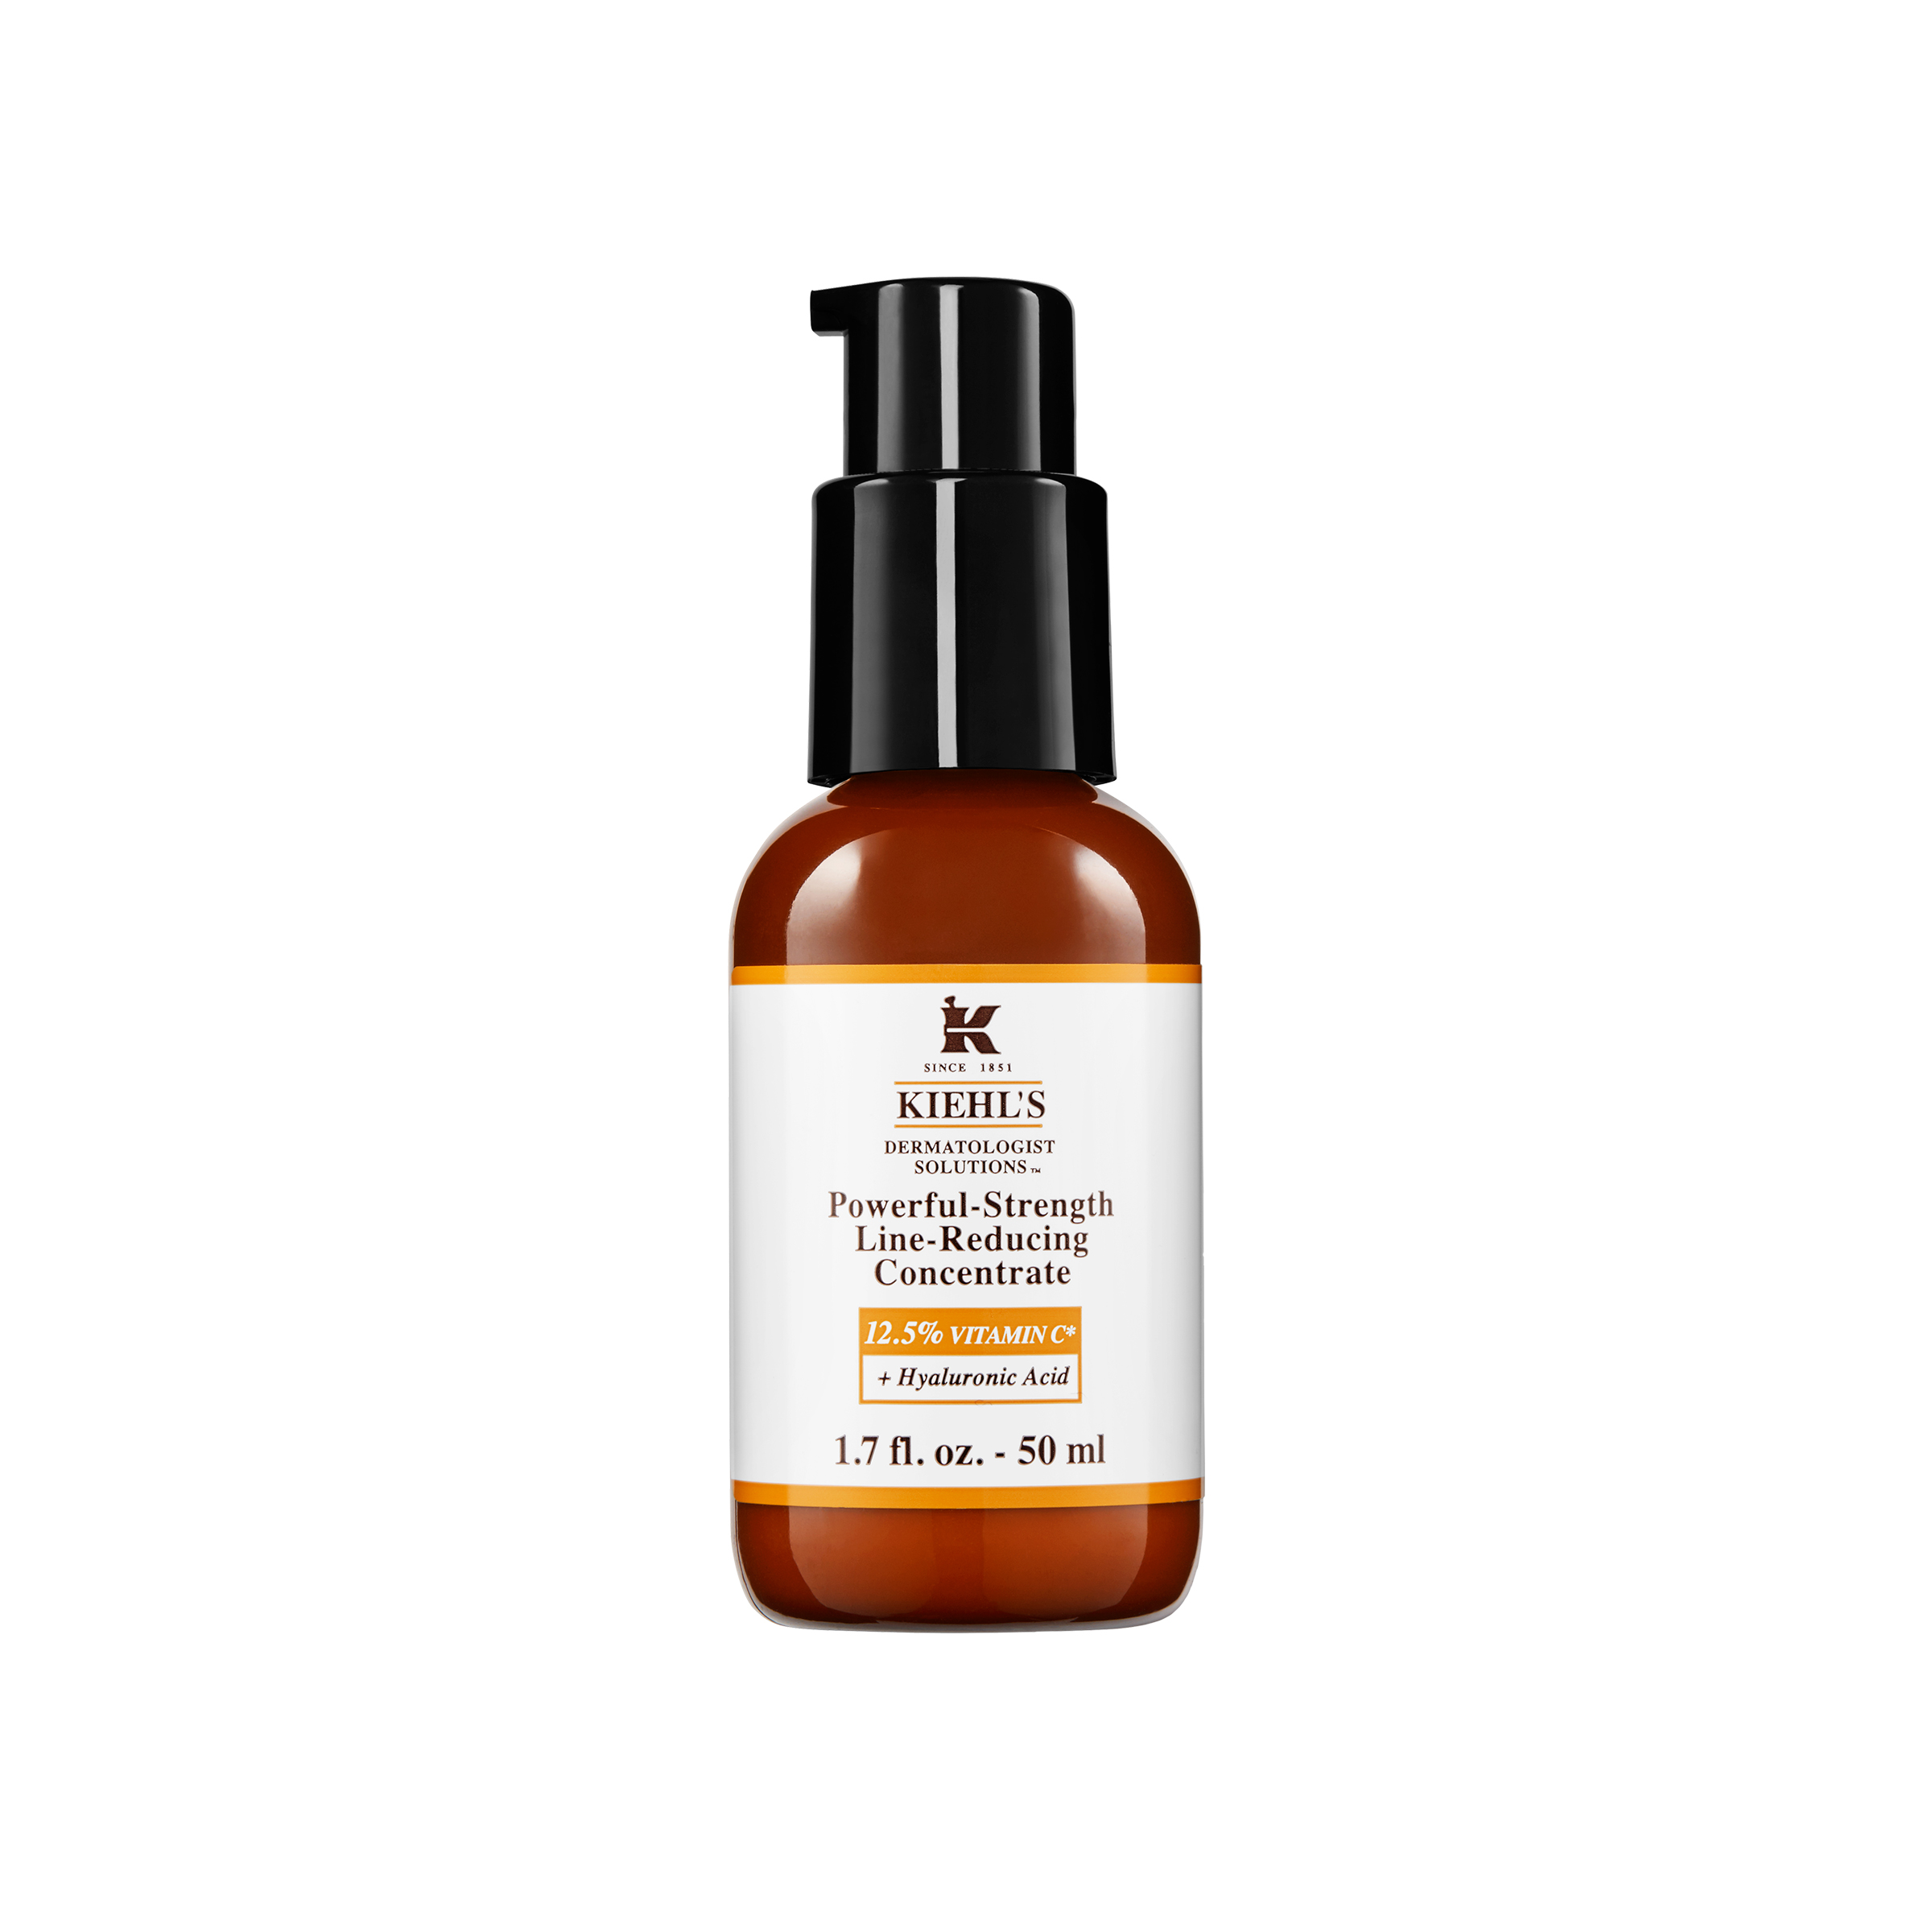 kiehls-face-serum-powerful-strength-line-reducing-concentrate-50ml-000-3605971536090-front